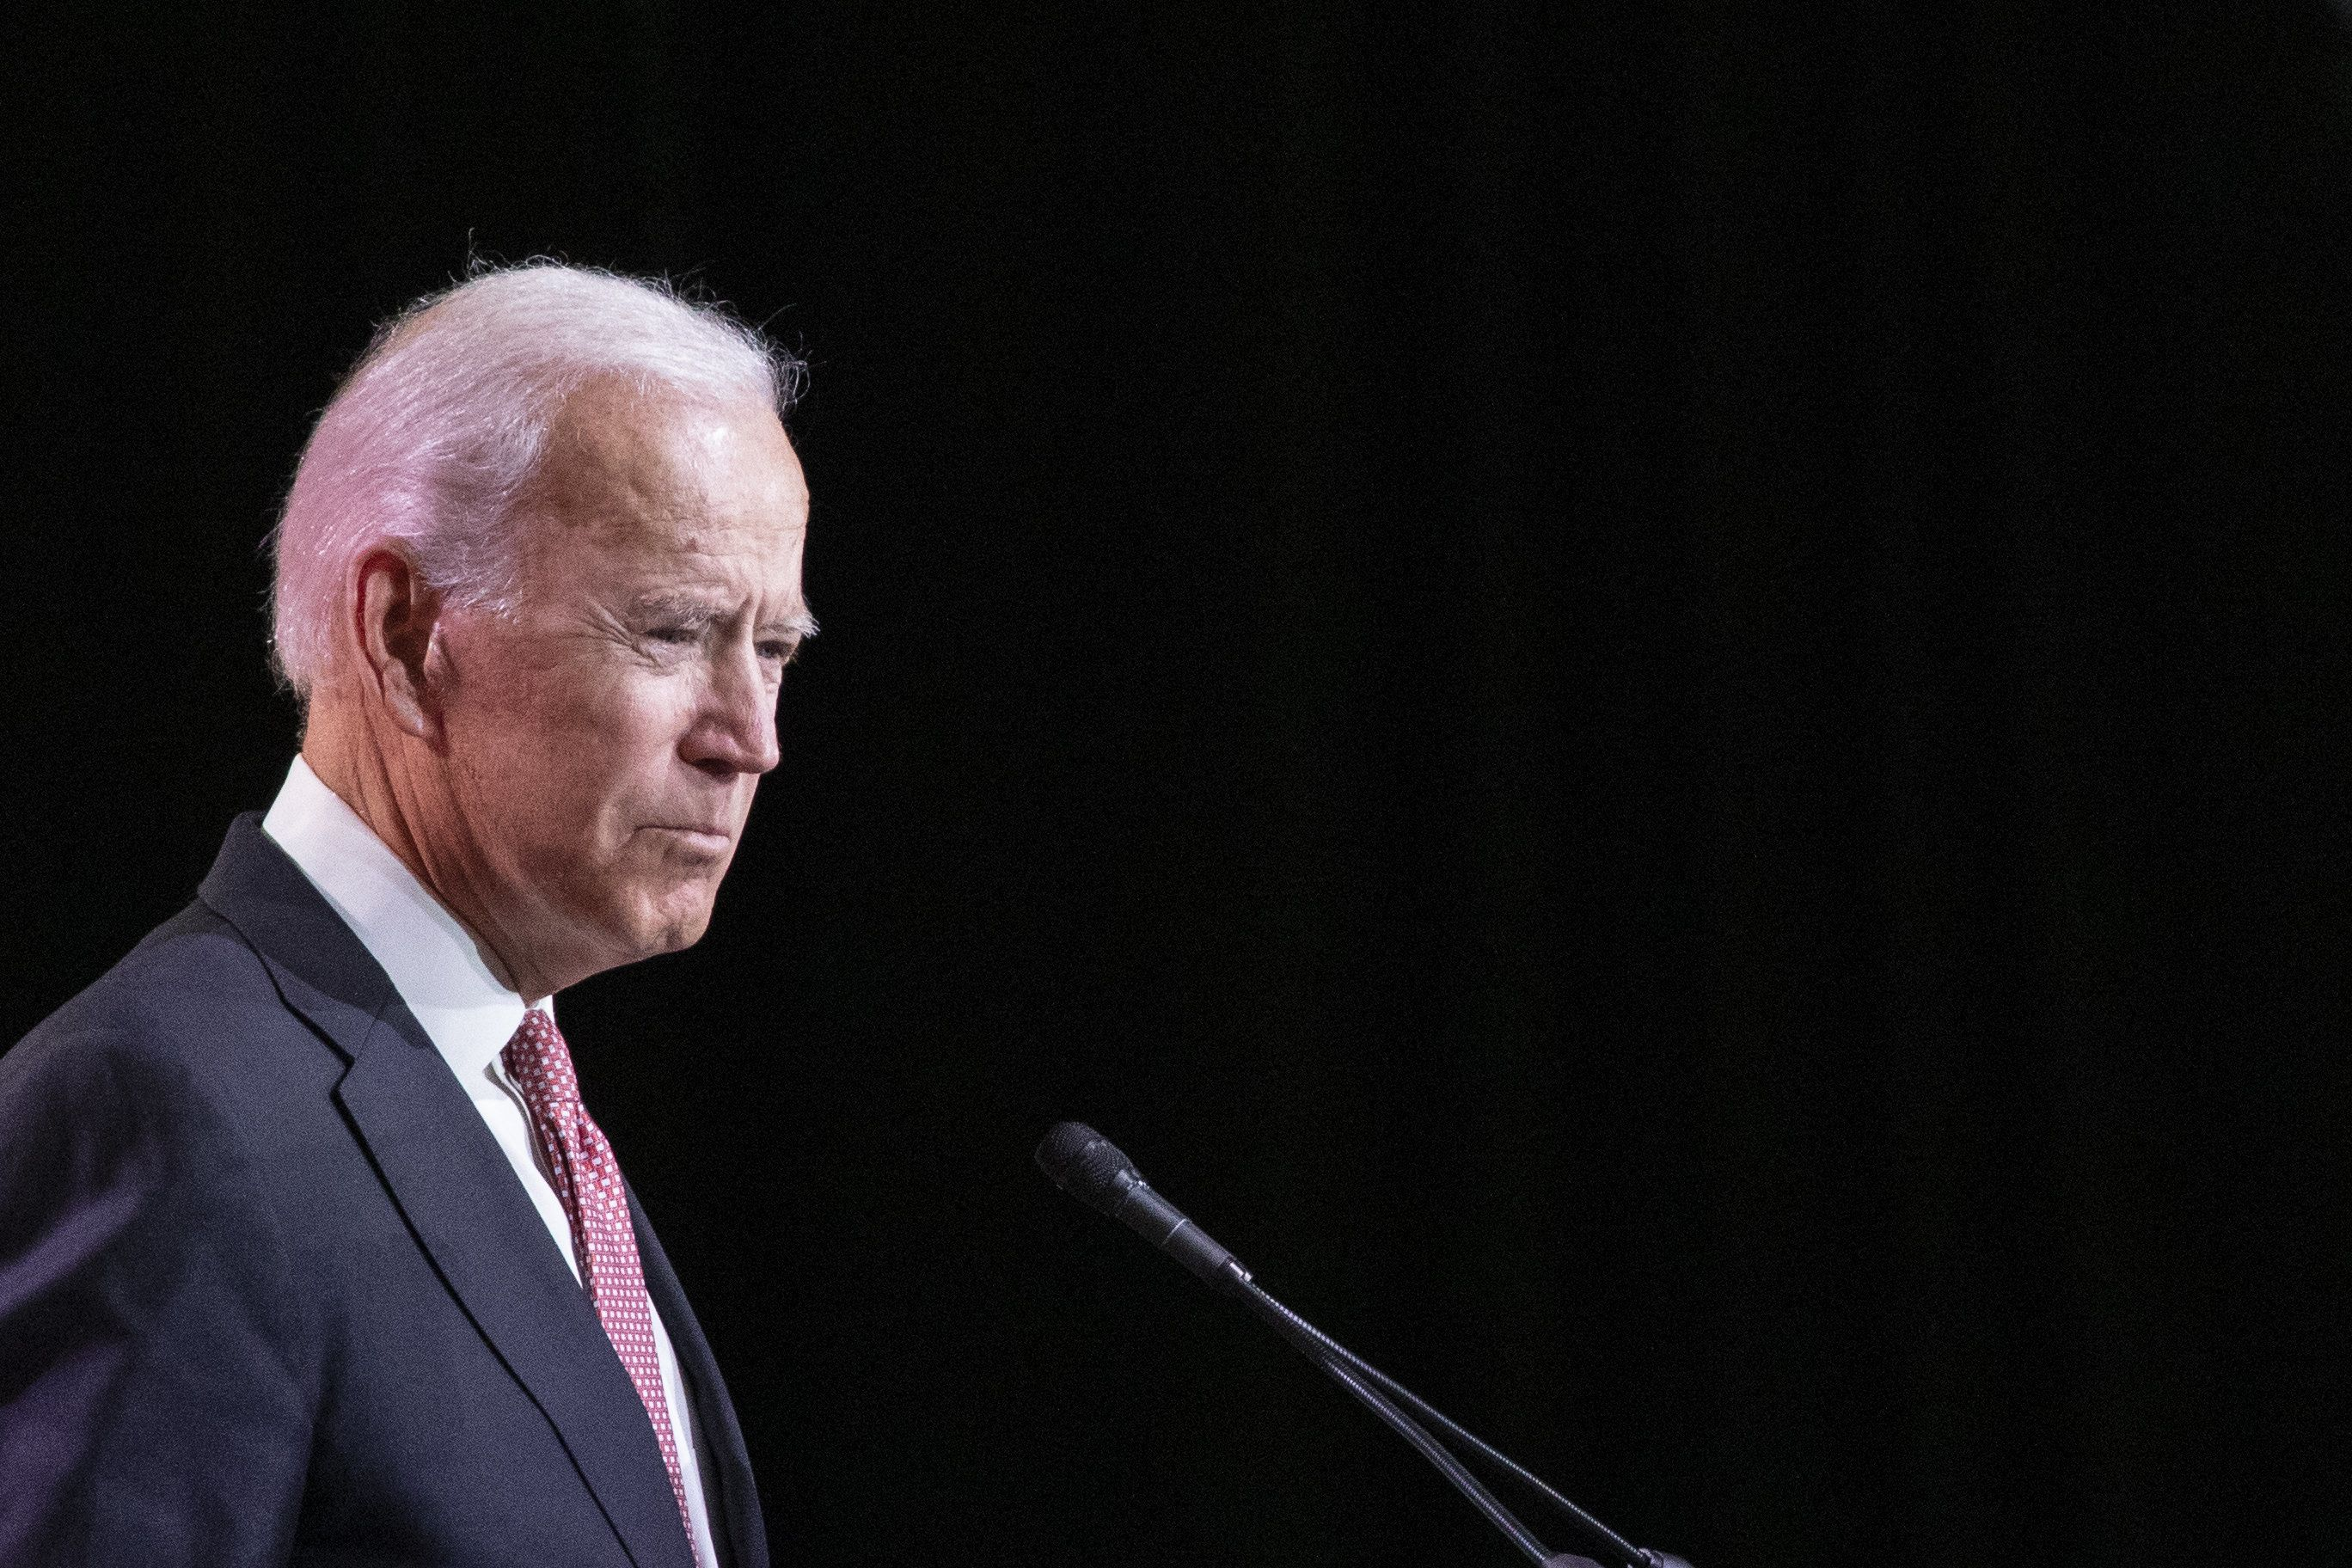 Former Vice President Joe Biden has long advocated for women's rights.